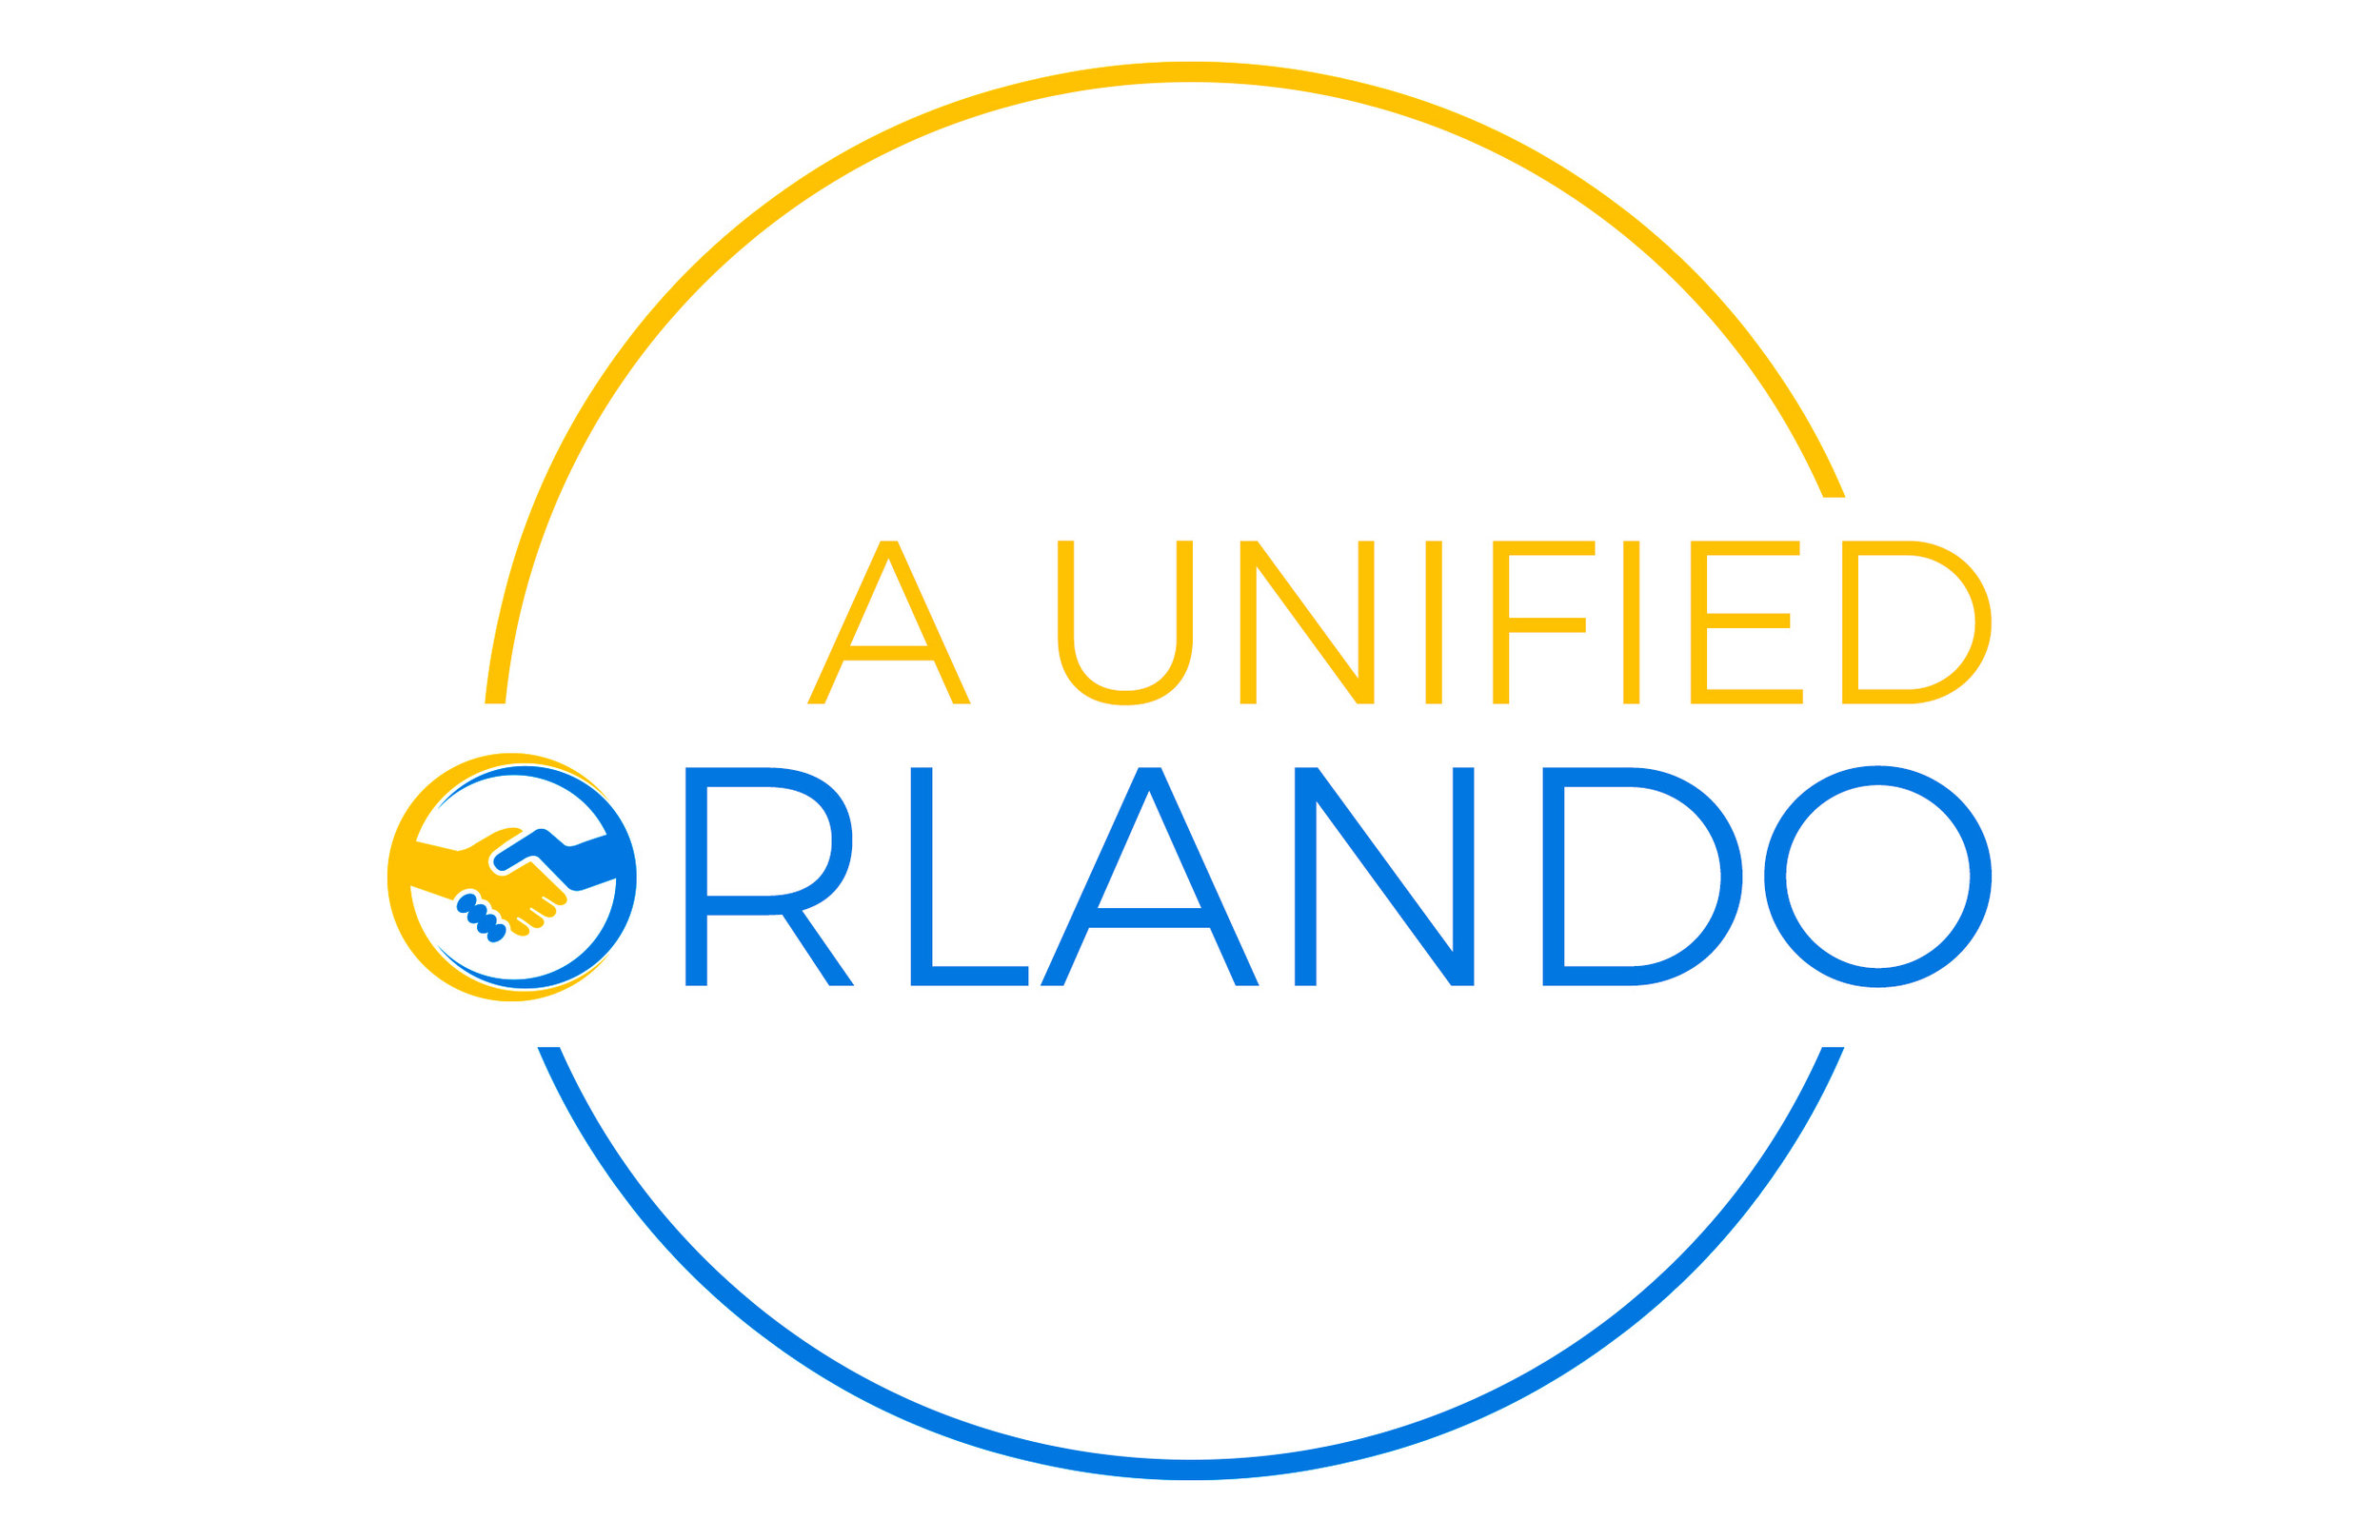 UnifiedOrlando_v2.jpg